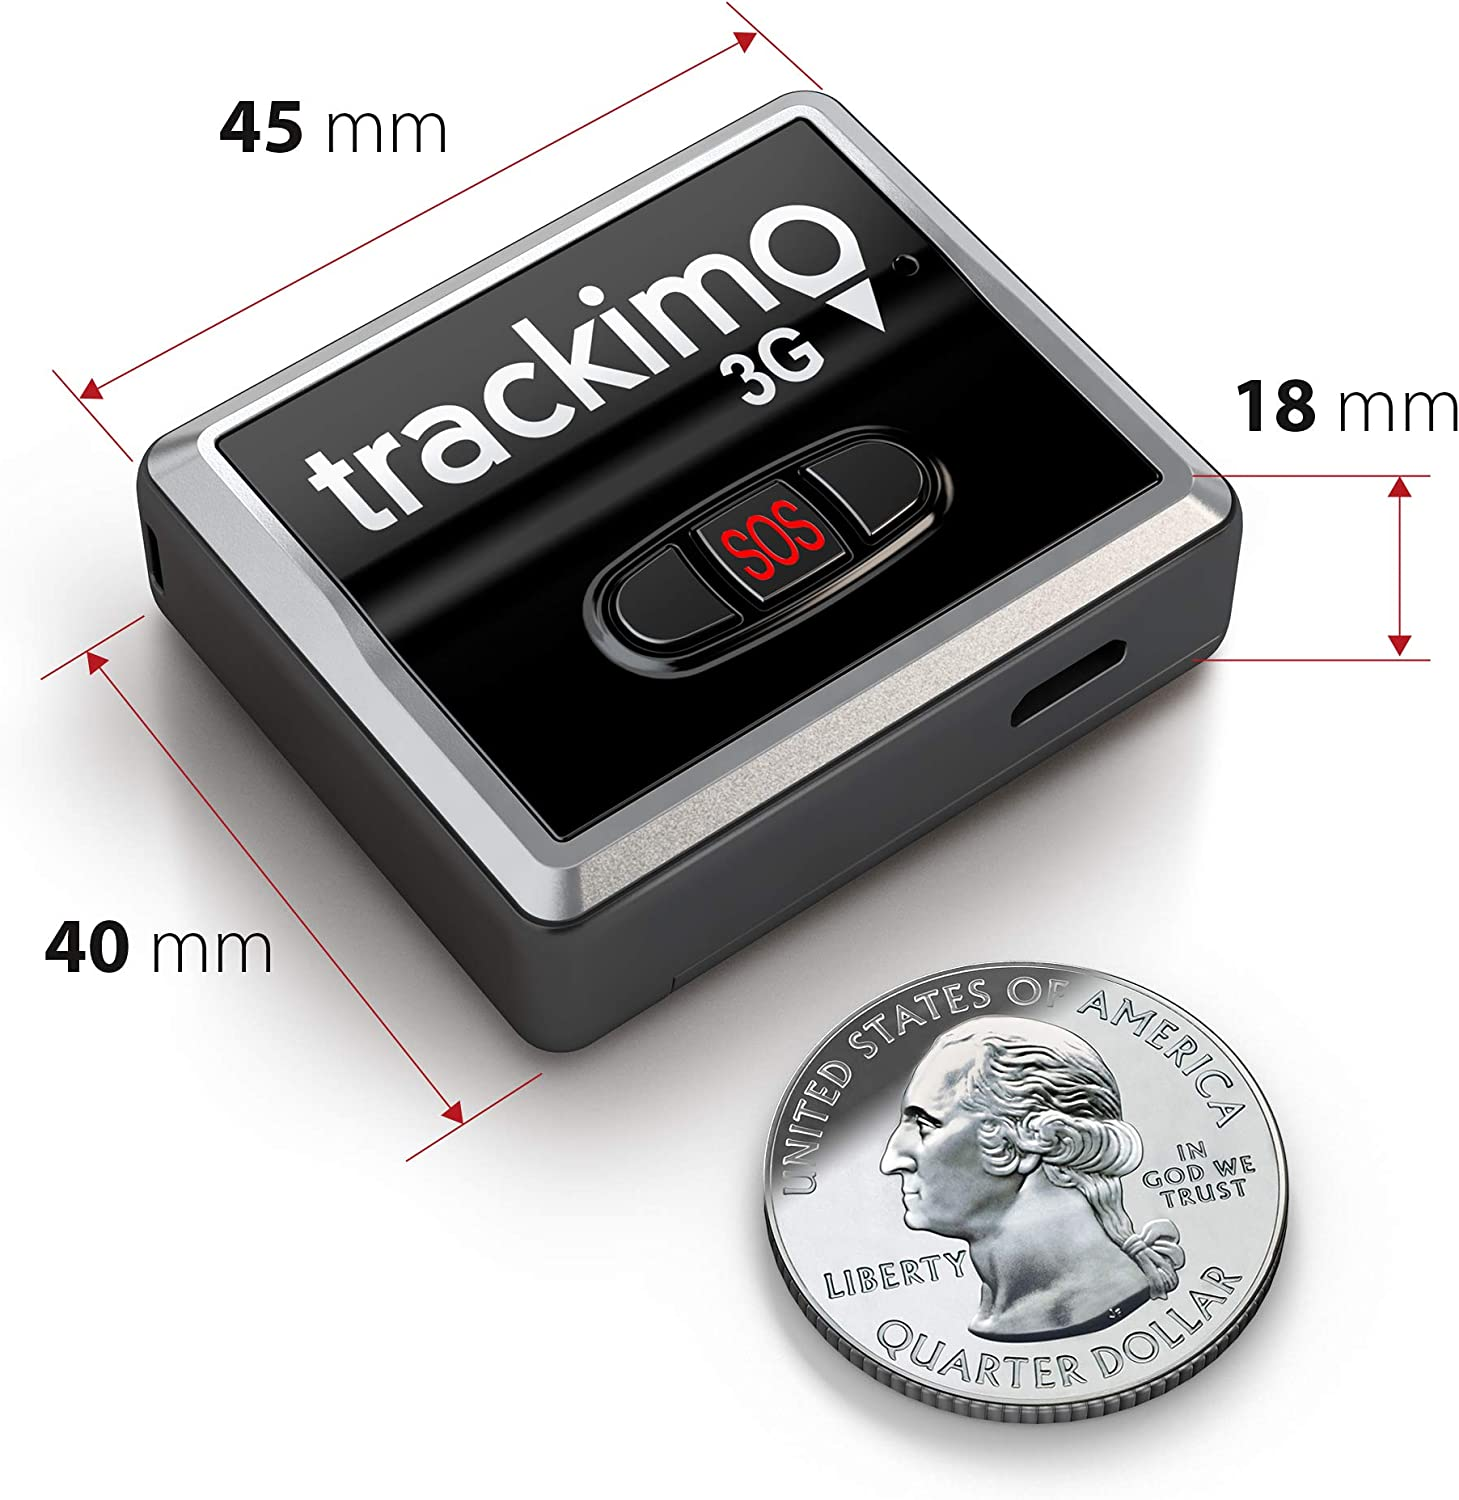 2020 Model GPS Tracker only Nothing Else is Included Tracki GPS Tracker No Accessories Factory Refurbished